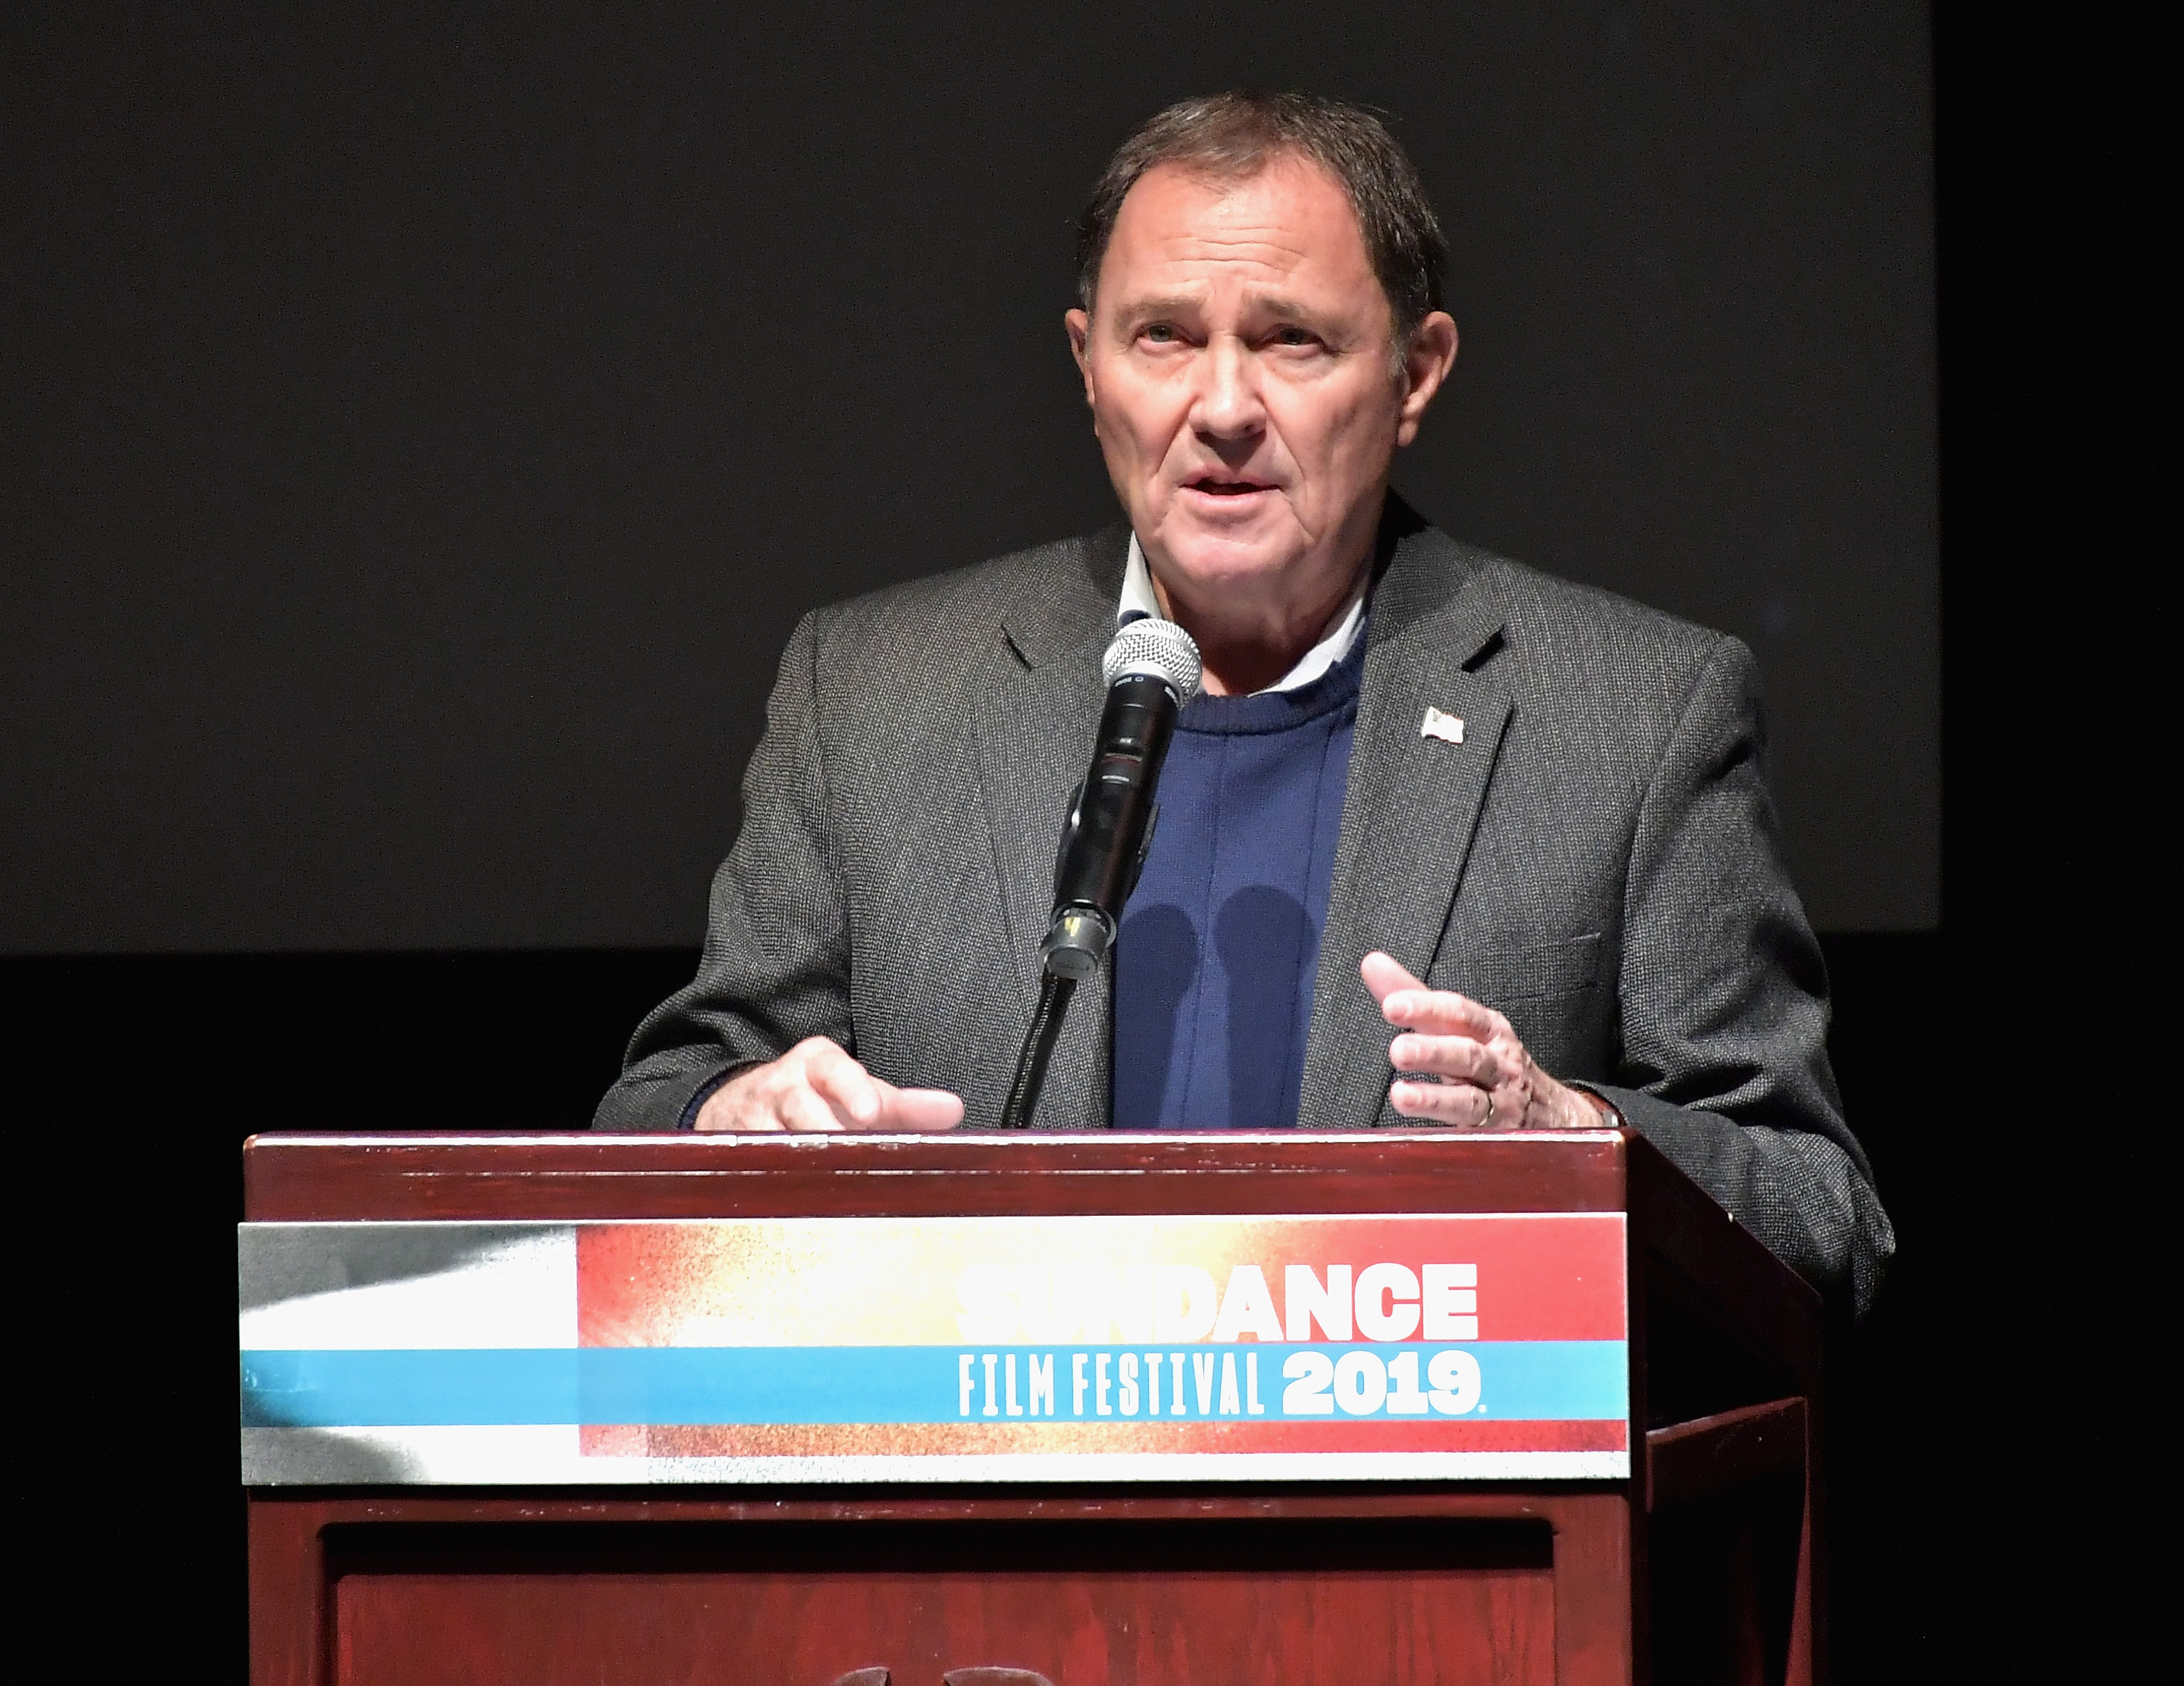 Governor of Utah Gary Herbert speaks during Salt Lake Opening Night Screening Of  The Boy Who Harnessed The Wind  Presented By Zions Bank during 2019 Sundance Film Festival at Rose Wagner Theatre on January 25, 2019 in Park City, Utah.